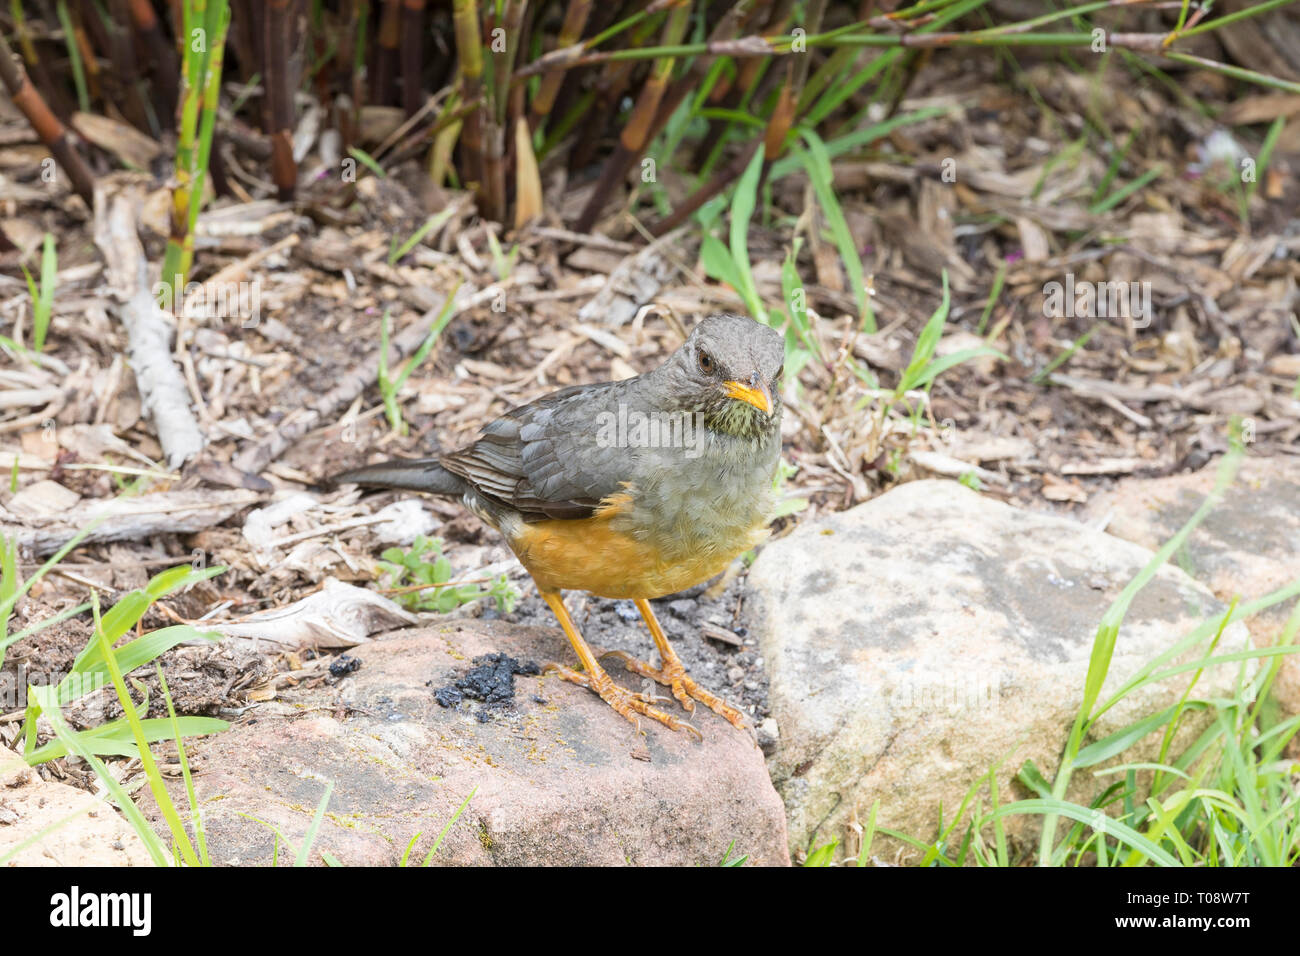 Olive Thrush, Turdus olivaceus, foraging in garden standing on stone edging, Western Cape, South Africa Stock Photo